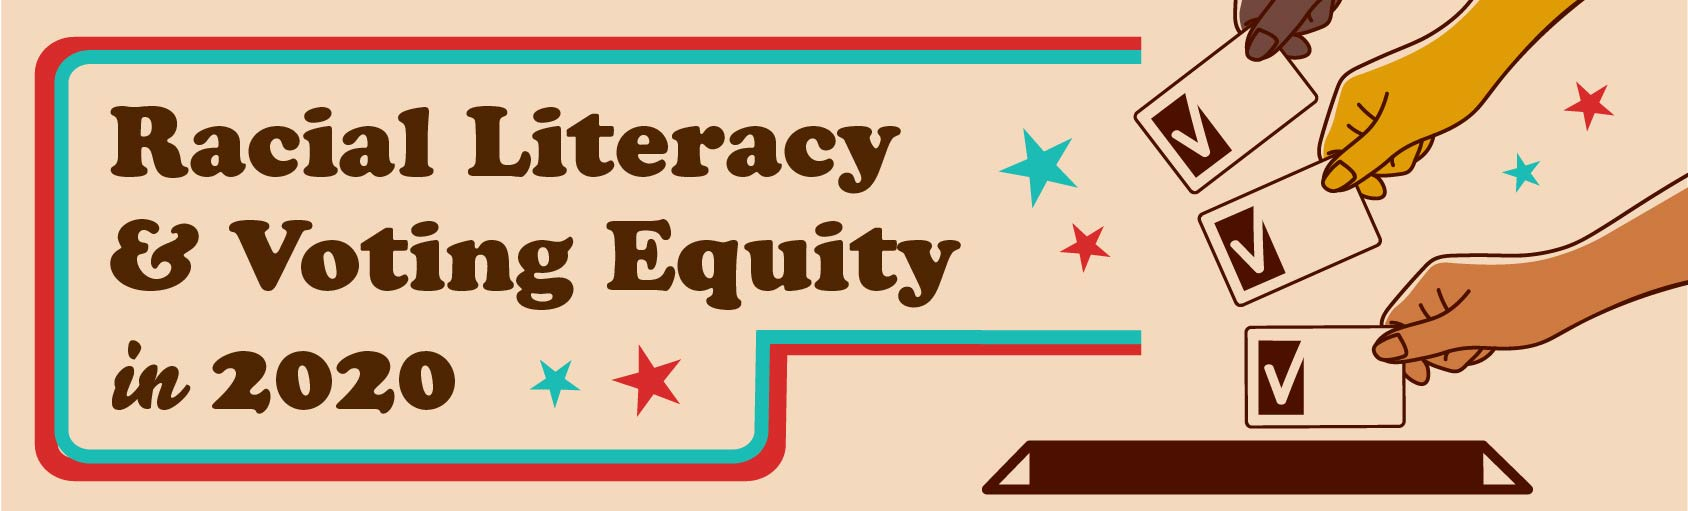 Racial Literacy and Voting Equity